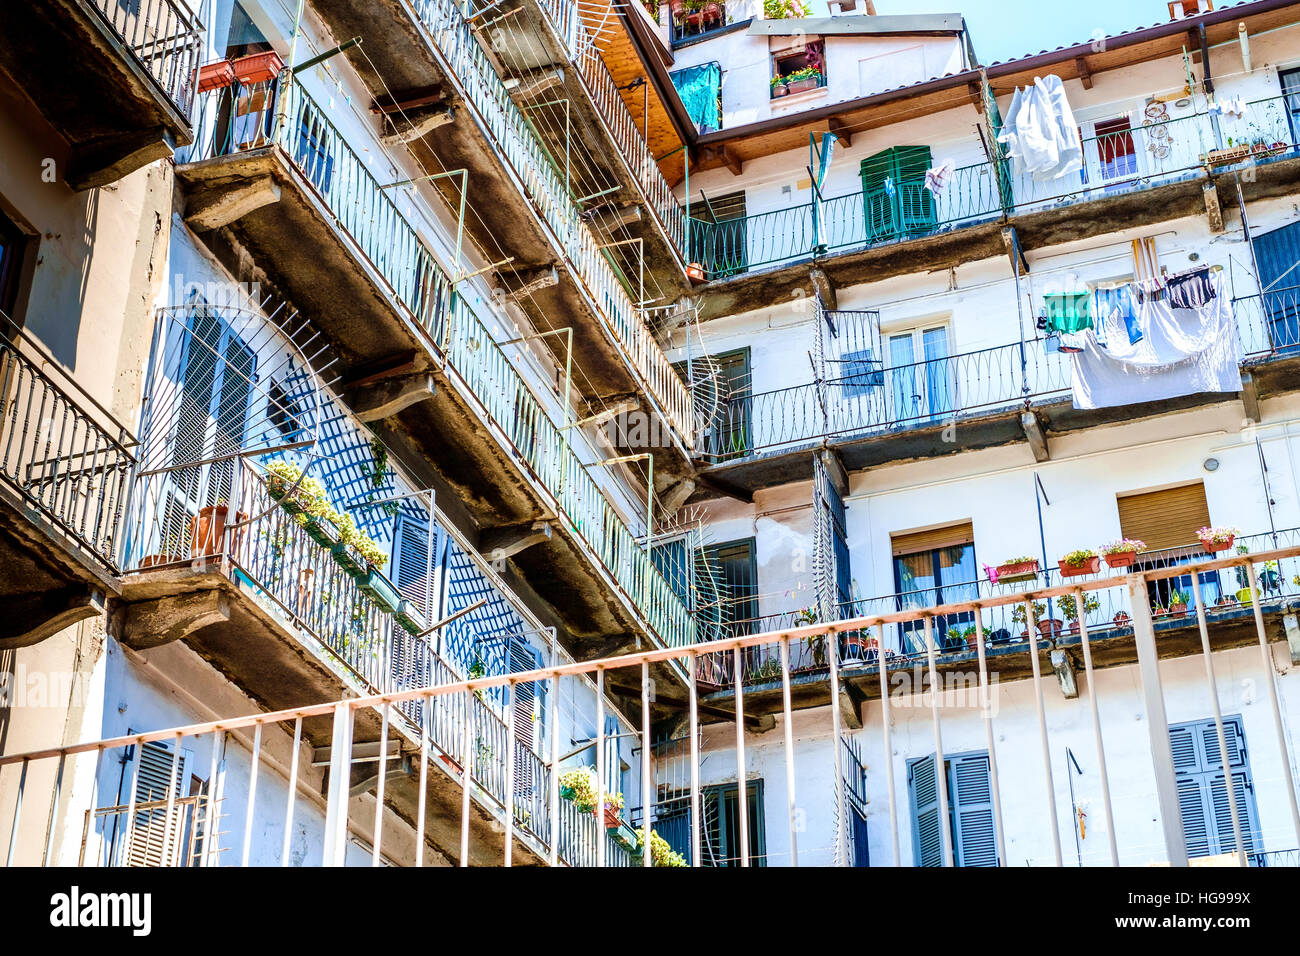 Typical North Italy condominium courtyard - Stock Image